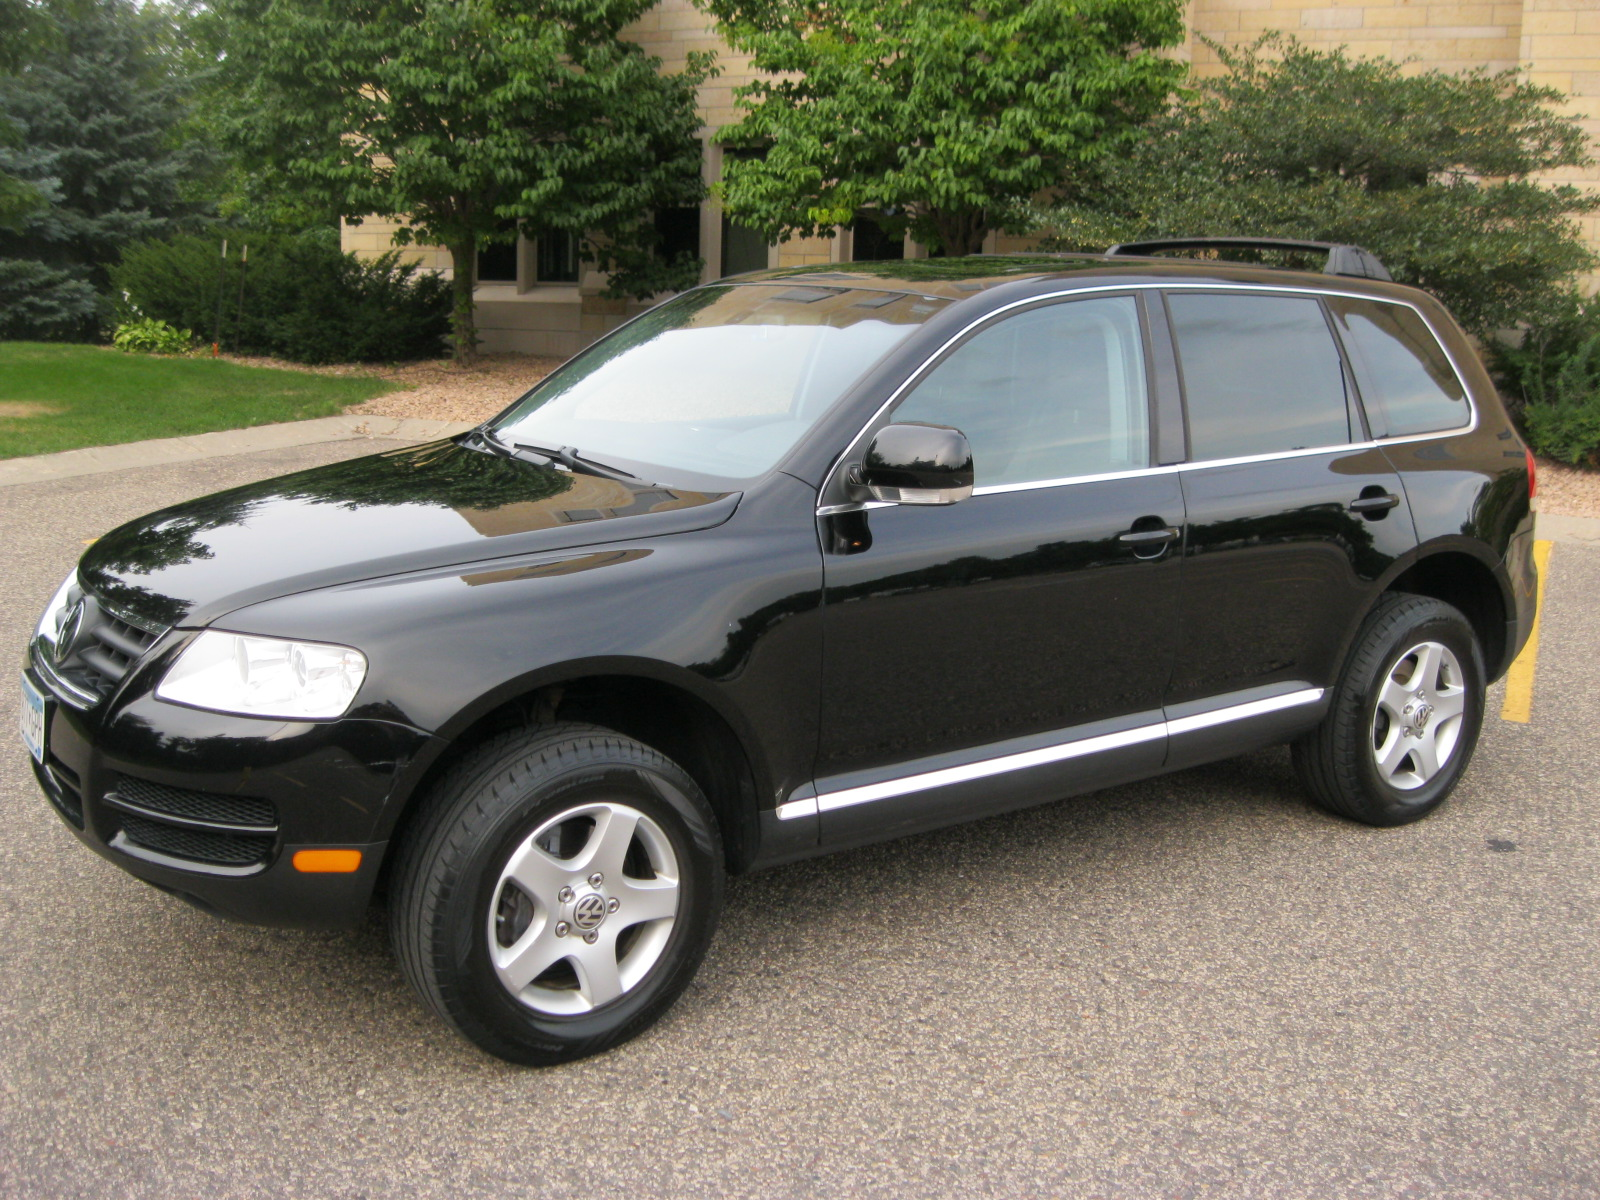 Volkswagen Tiguan 2004 Review Amazing Pictures And